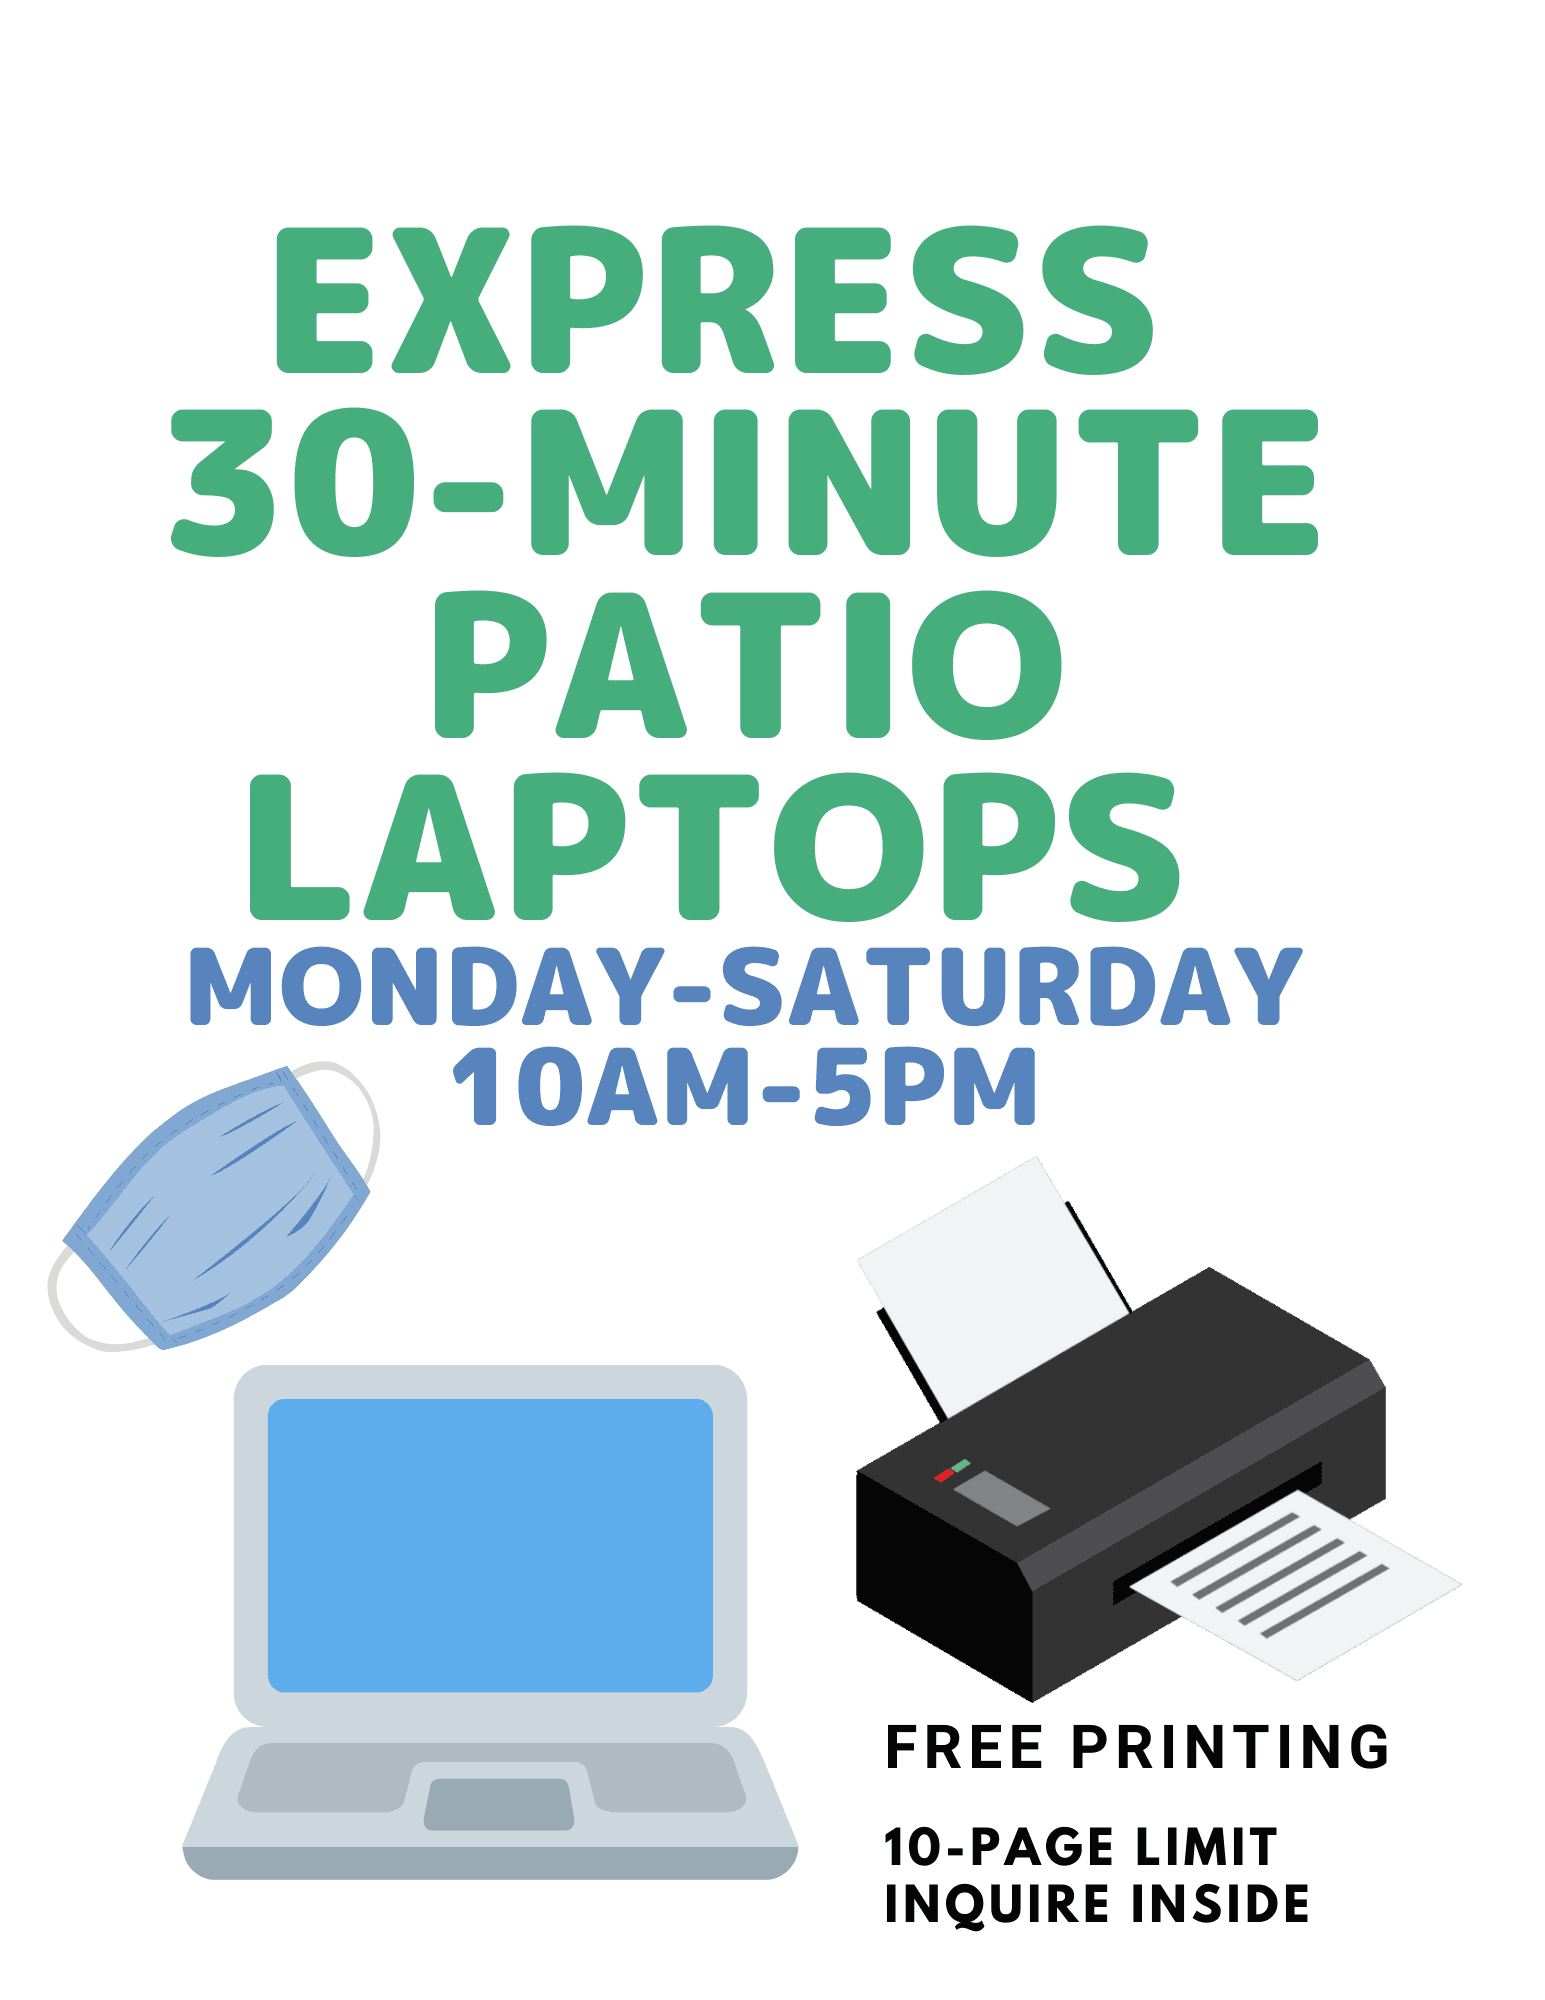 Patio printing available monday through saturday 10 to 5 10 page limit